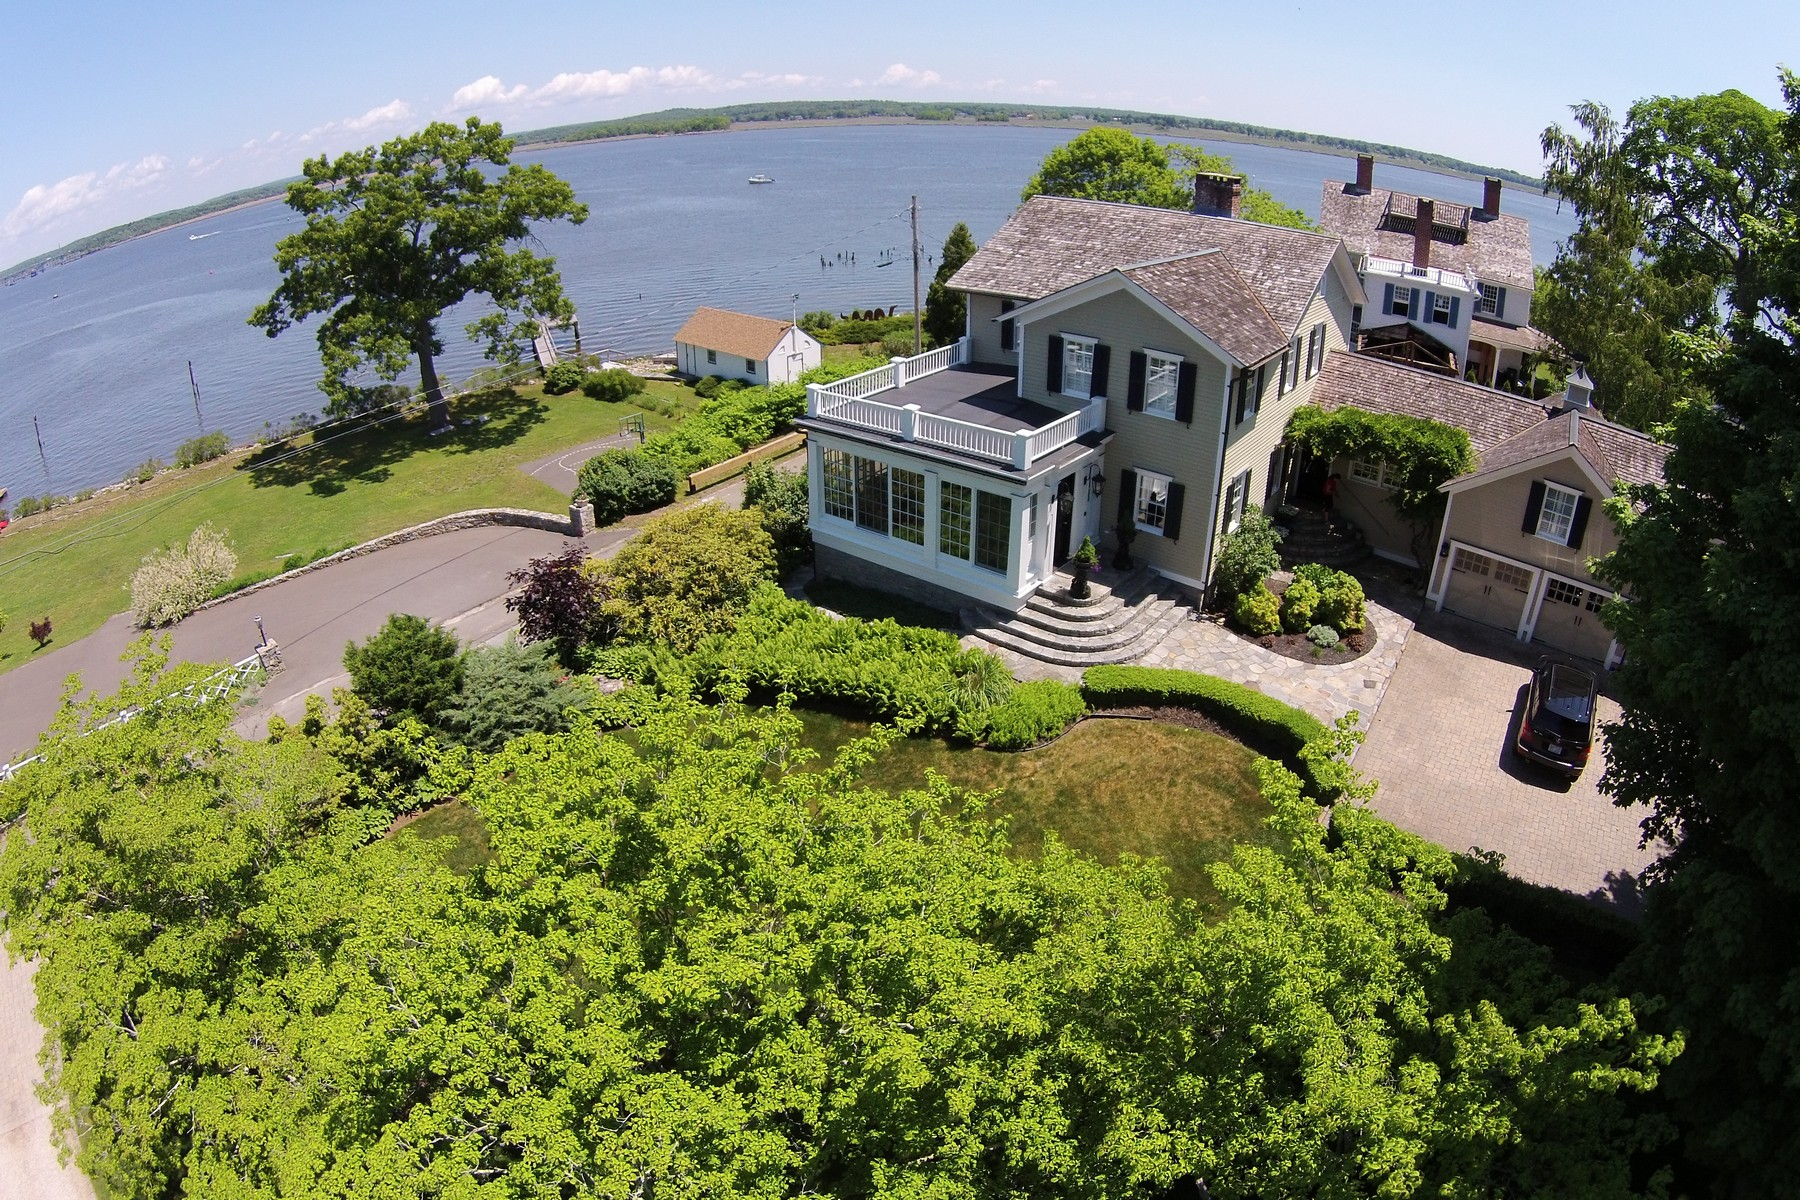 Property For Sale at Historic Home with Views of Ct River